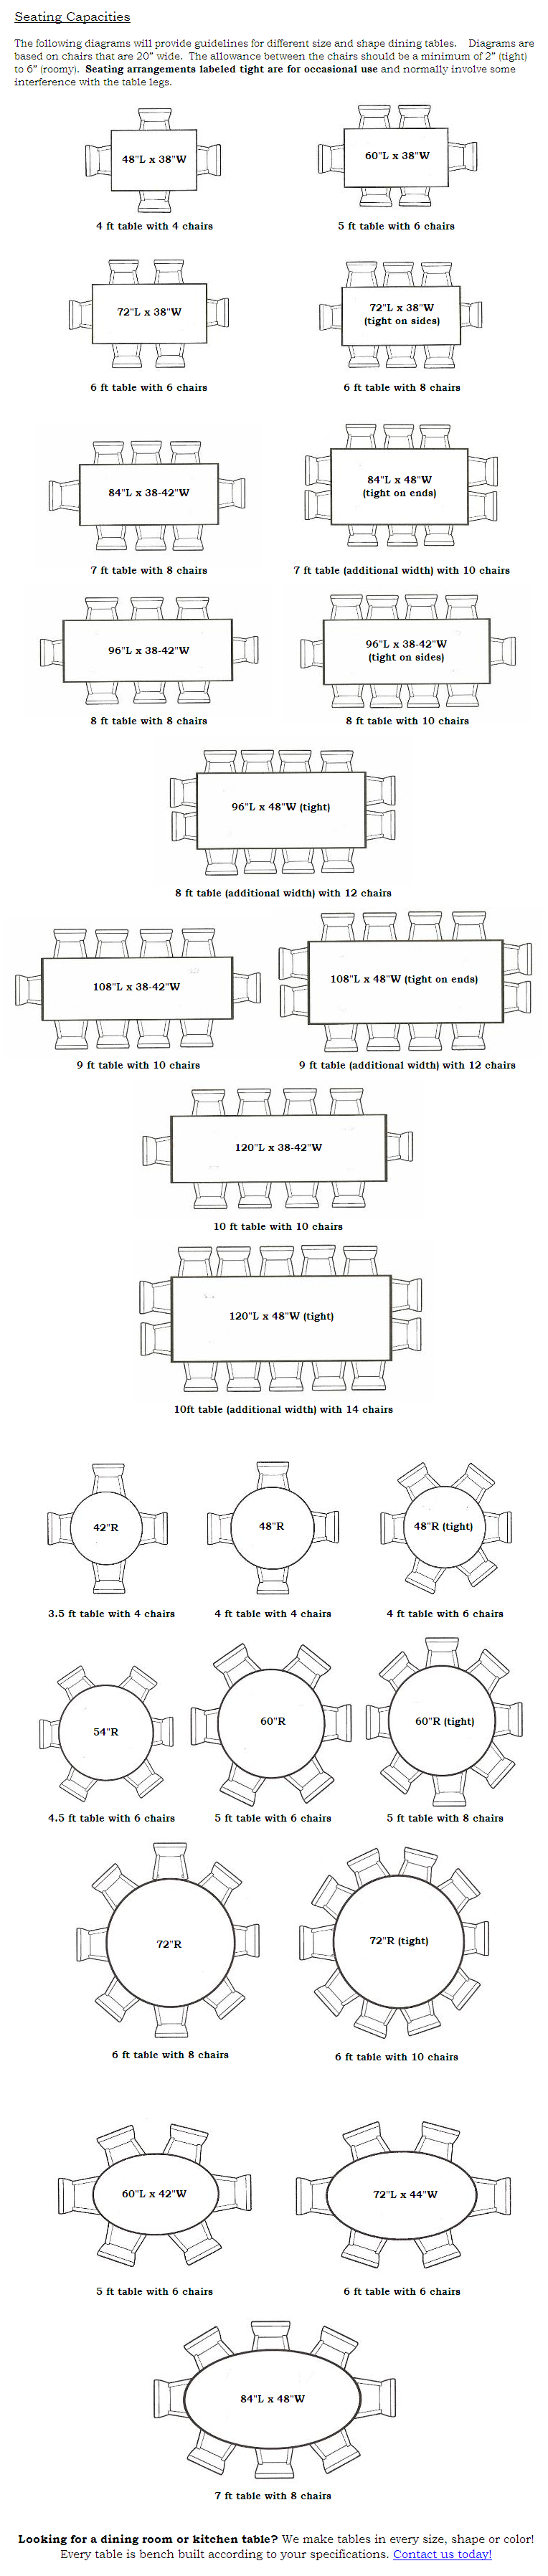 dining table seating capacities chart by size and shape perfect for making sure that every guest in comfortable bringthewine [ 764 x 3592 Pixel ]